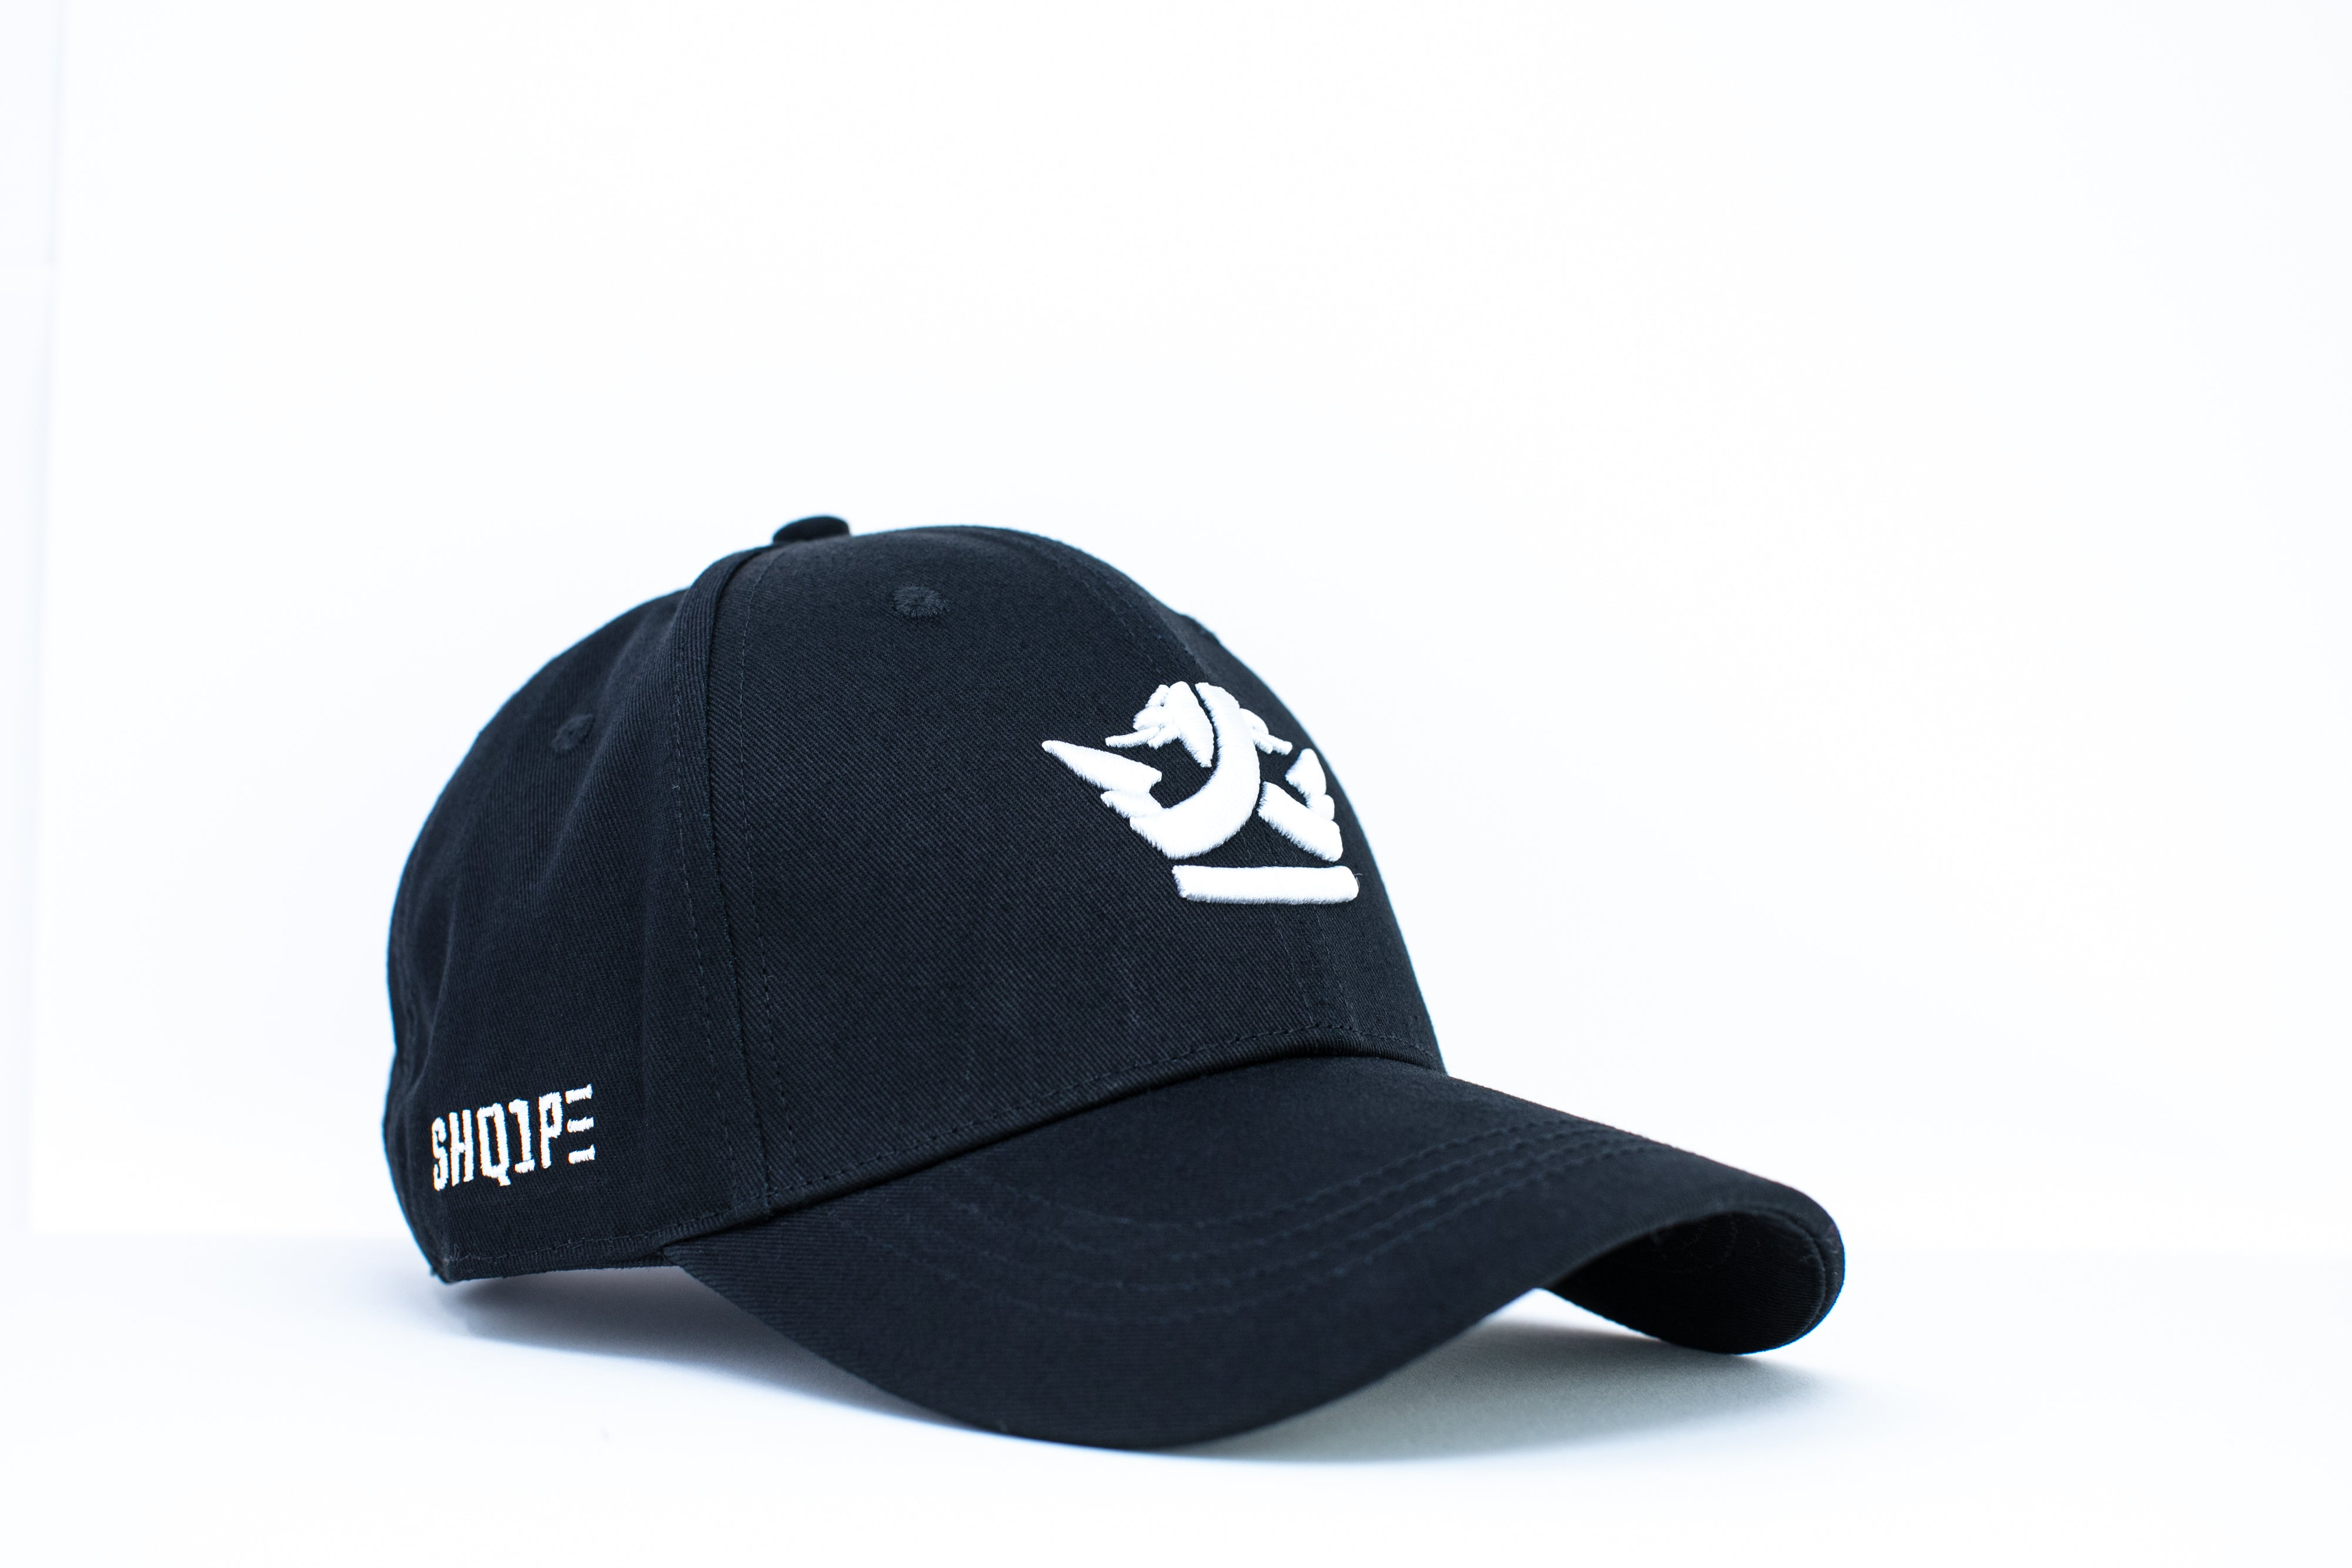 1st Edition Shq1pe Baseball Cap Black/White